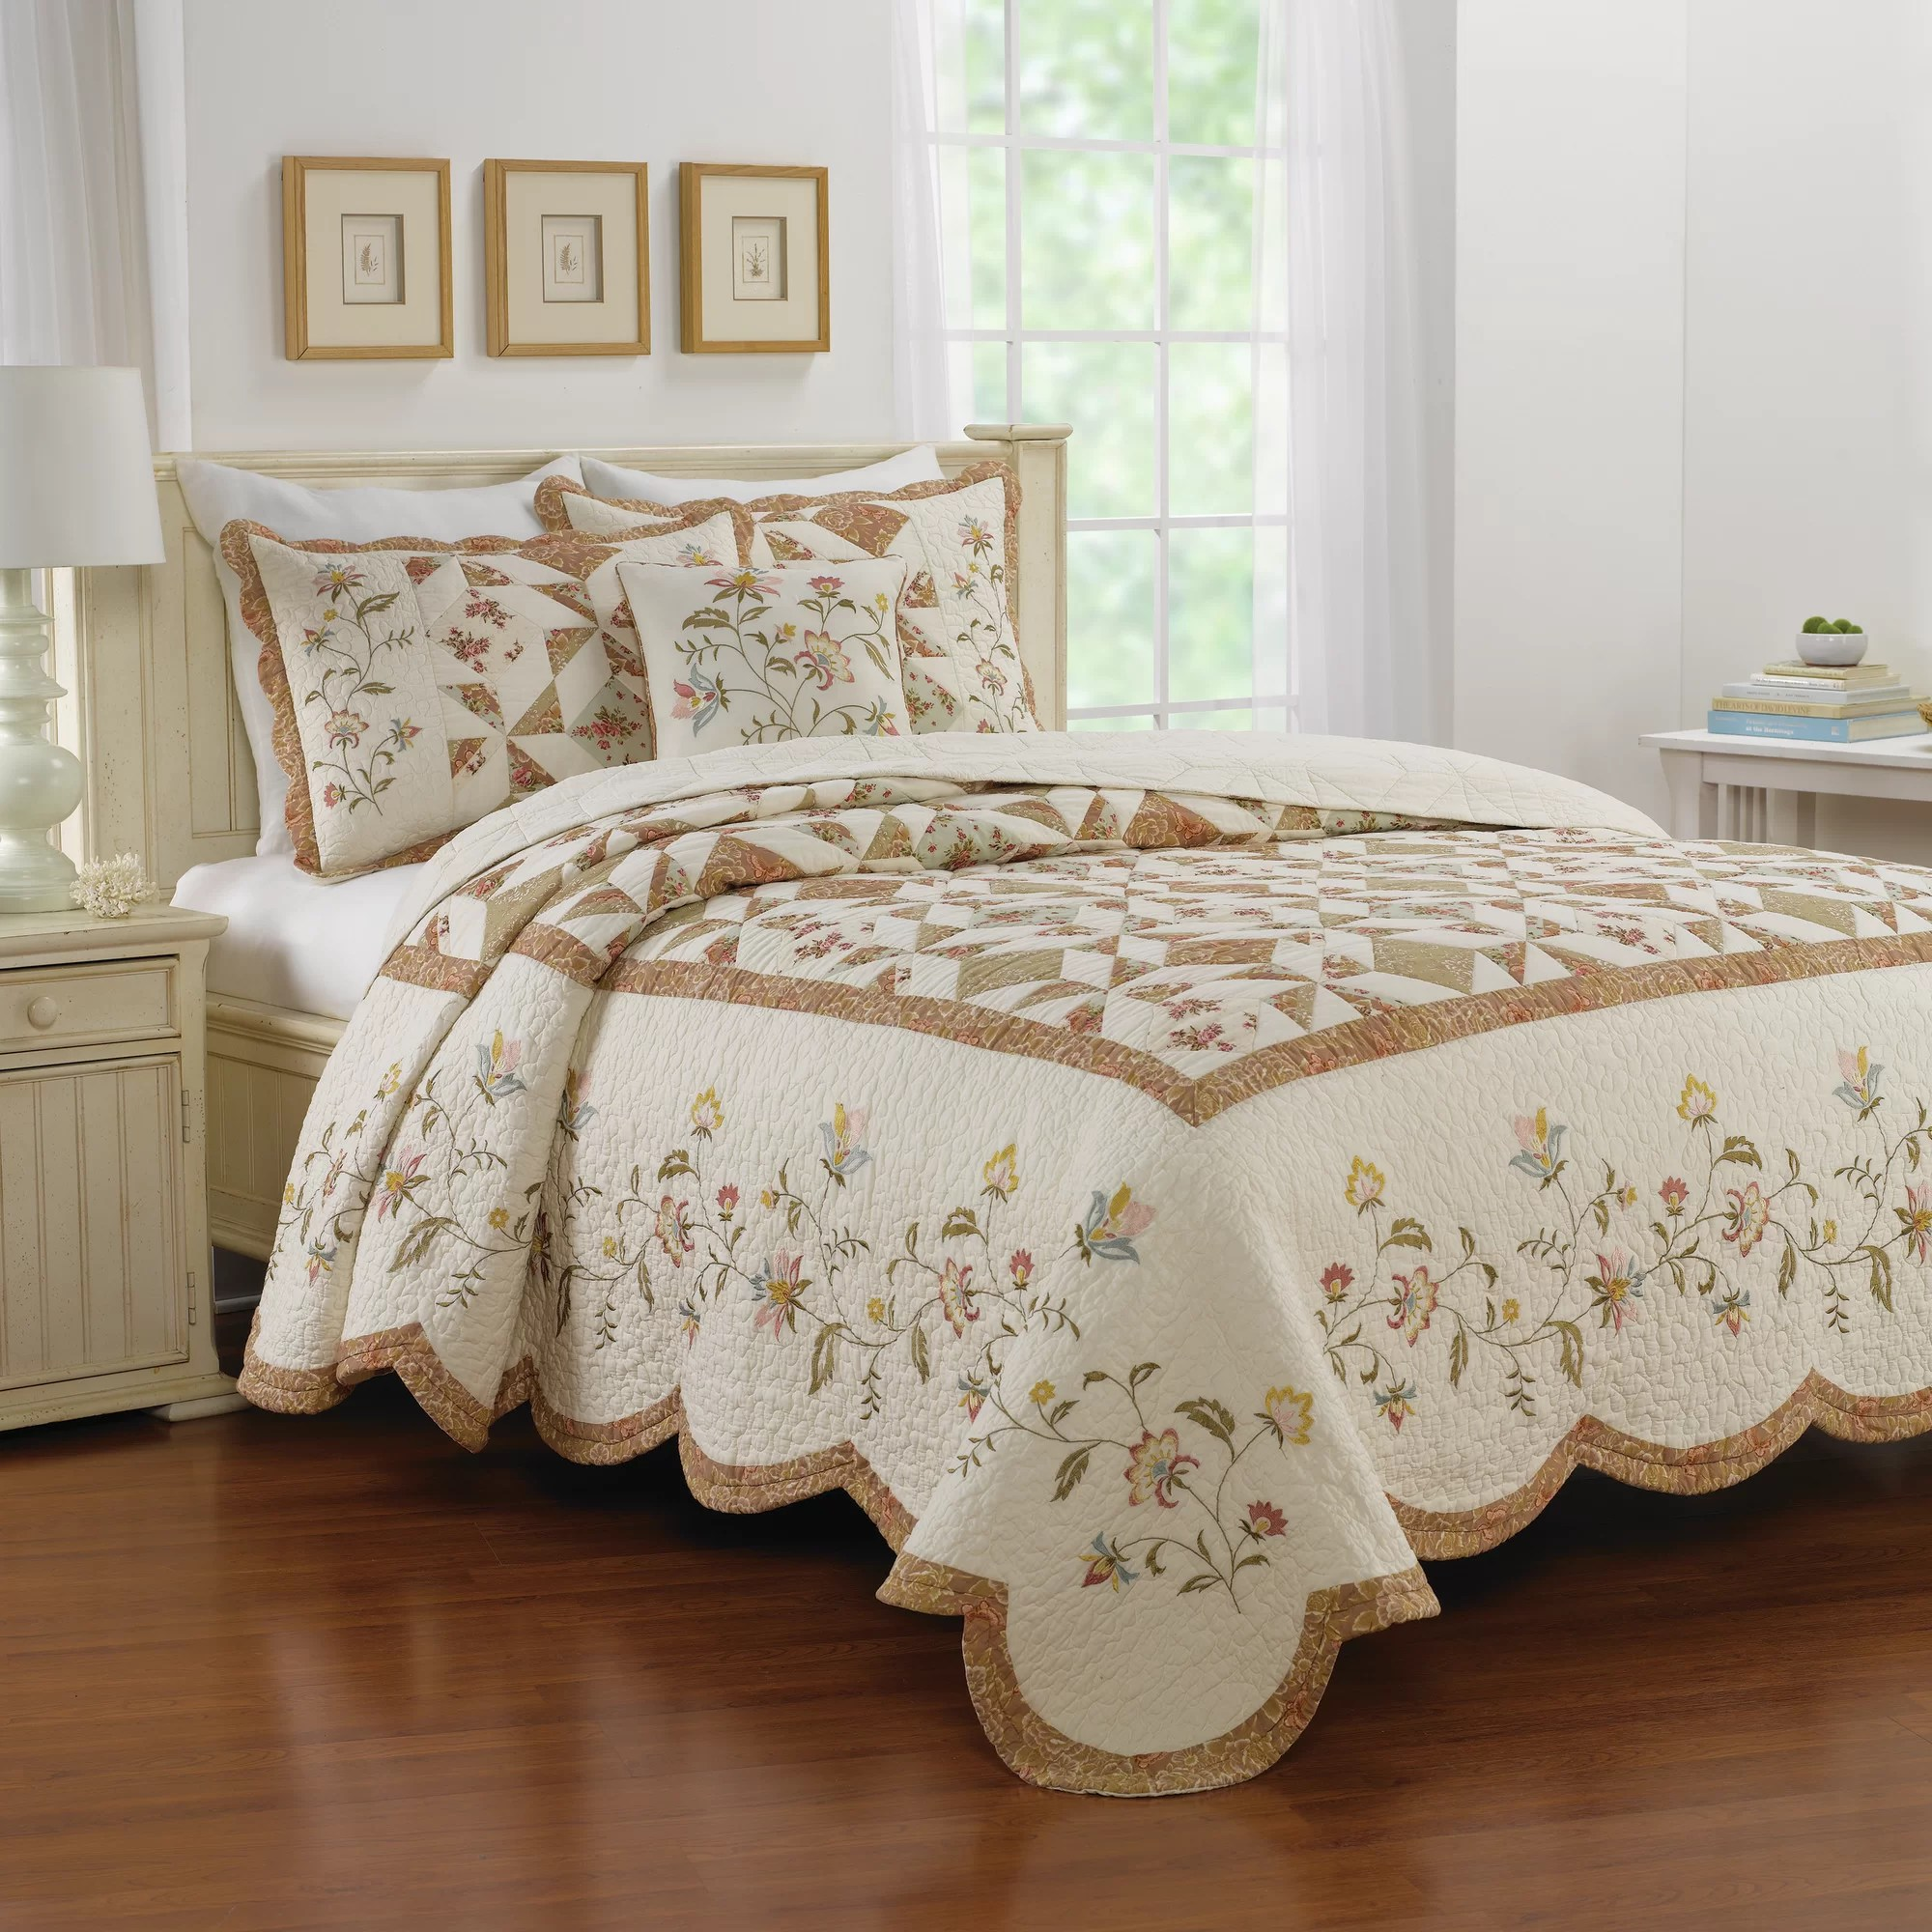 Single Coverlet Pineview Single Coverlet